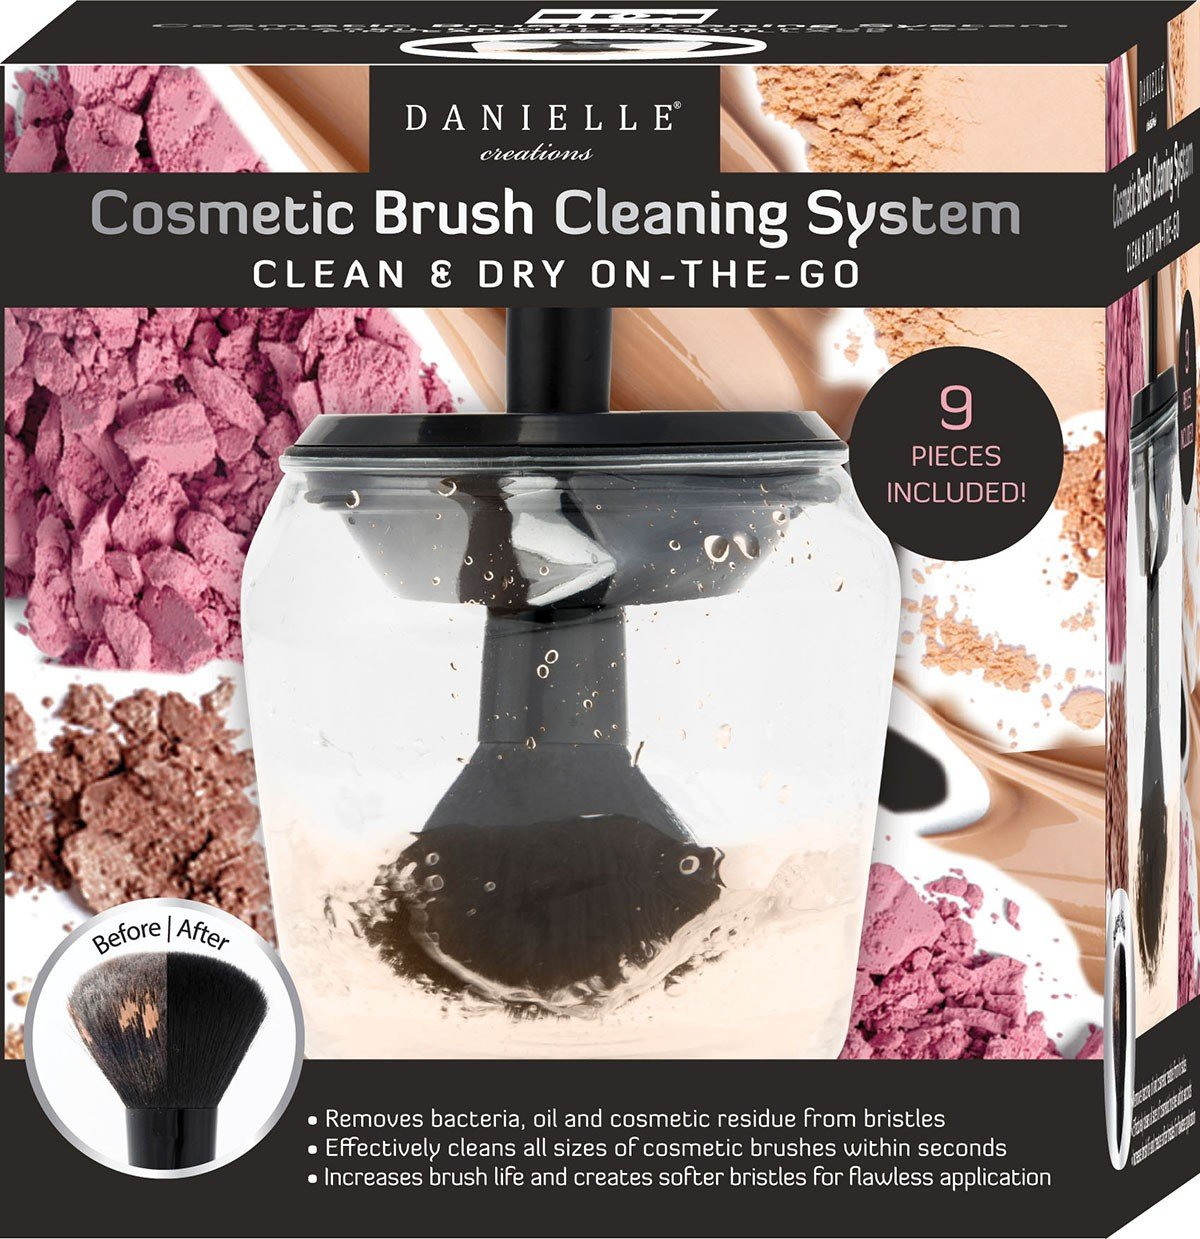 Danielle Creations Brush 期間限定送料無料 Cleaning System The Clean Go On Dy 毎日激安特売で 営業中です